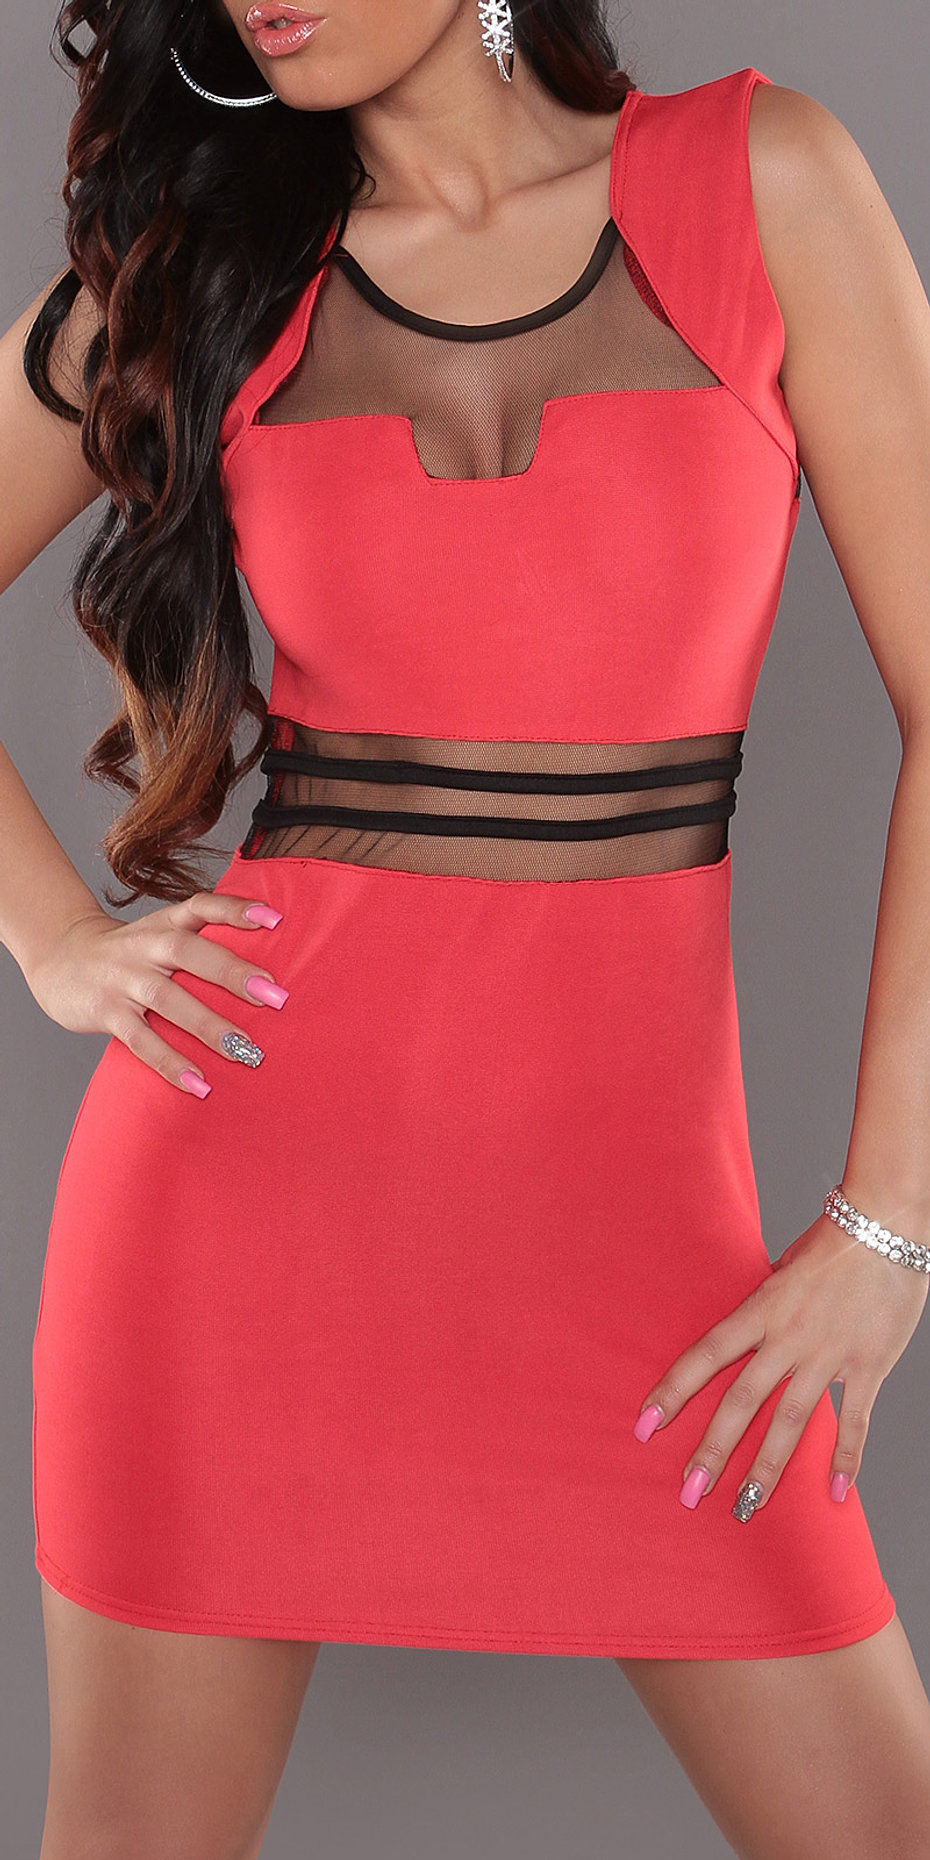 iiMinidress_with_transparent_views__Color_RED_Size_M_0000K6022_ROT_34.jpg